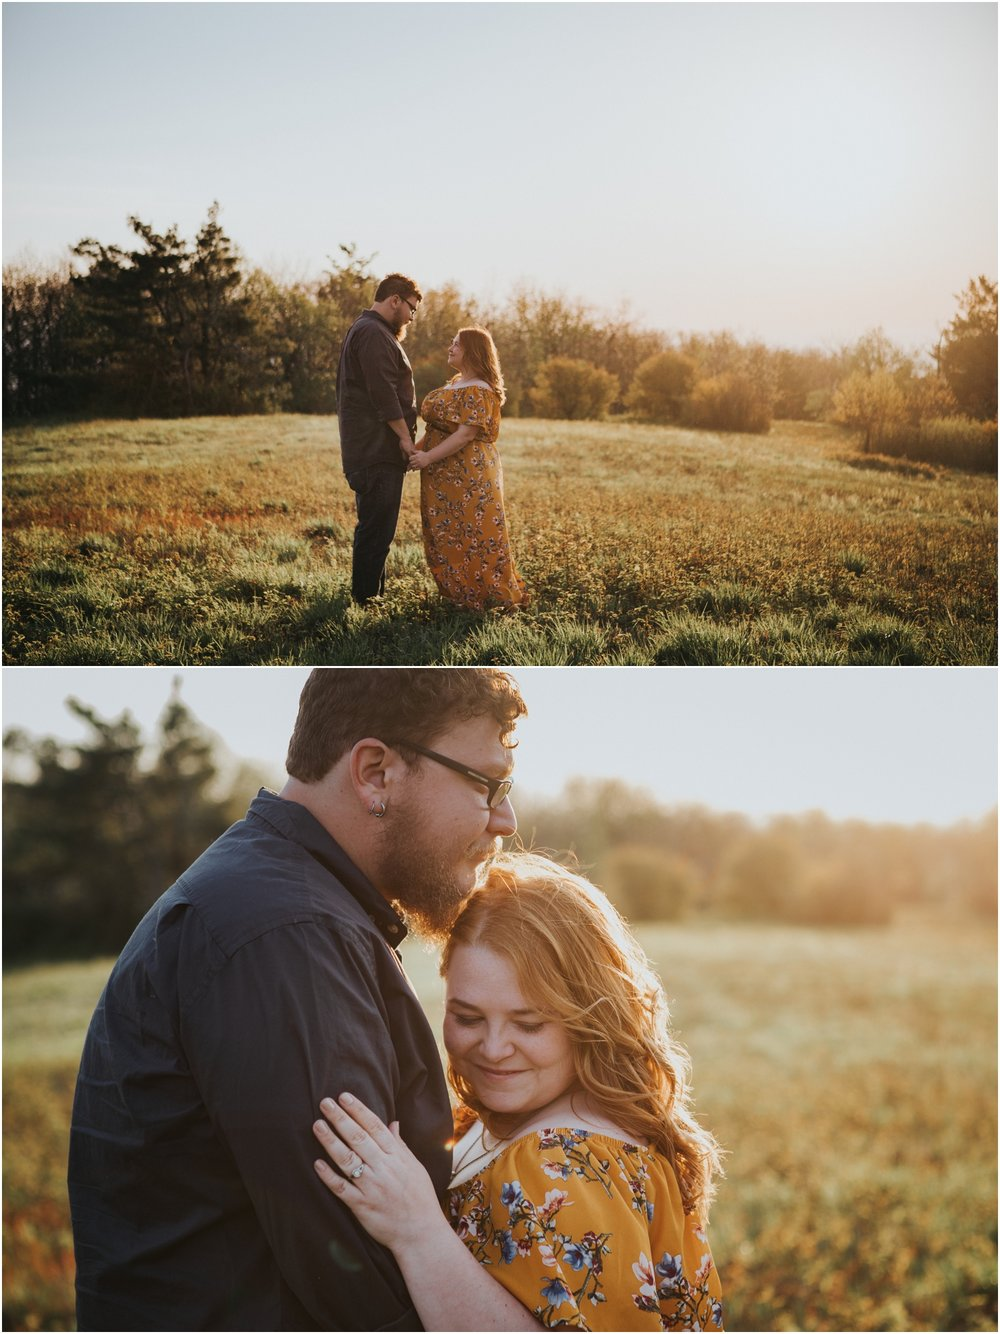 katy-sergent-photography-beauty-spot-unaka-mountain-engagement-blue-ridge-mountains-appalachian-trail-adventurous-couple-elopement-johnson-city-wedding-photographer_0017.jpg